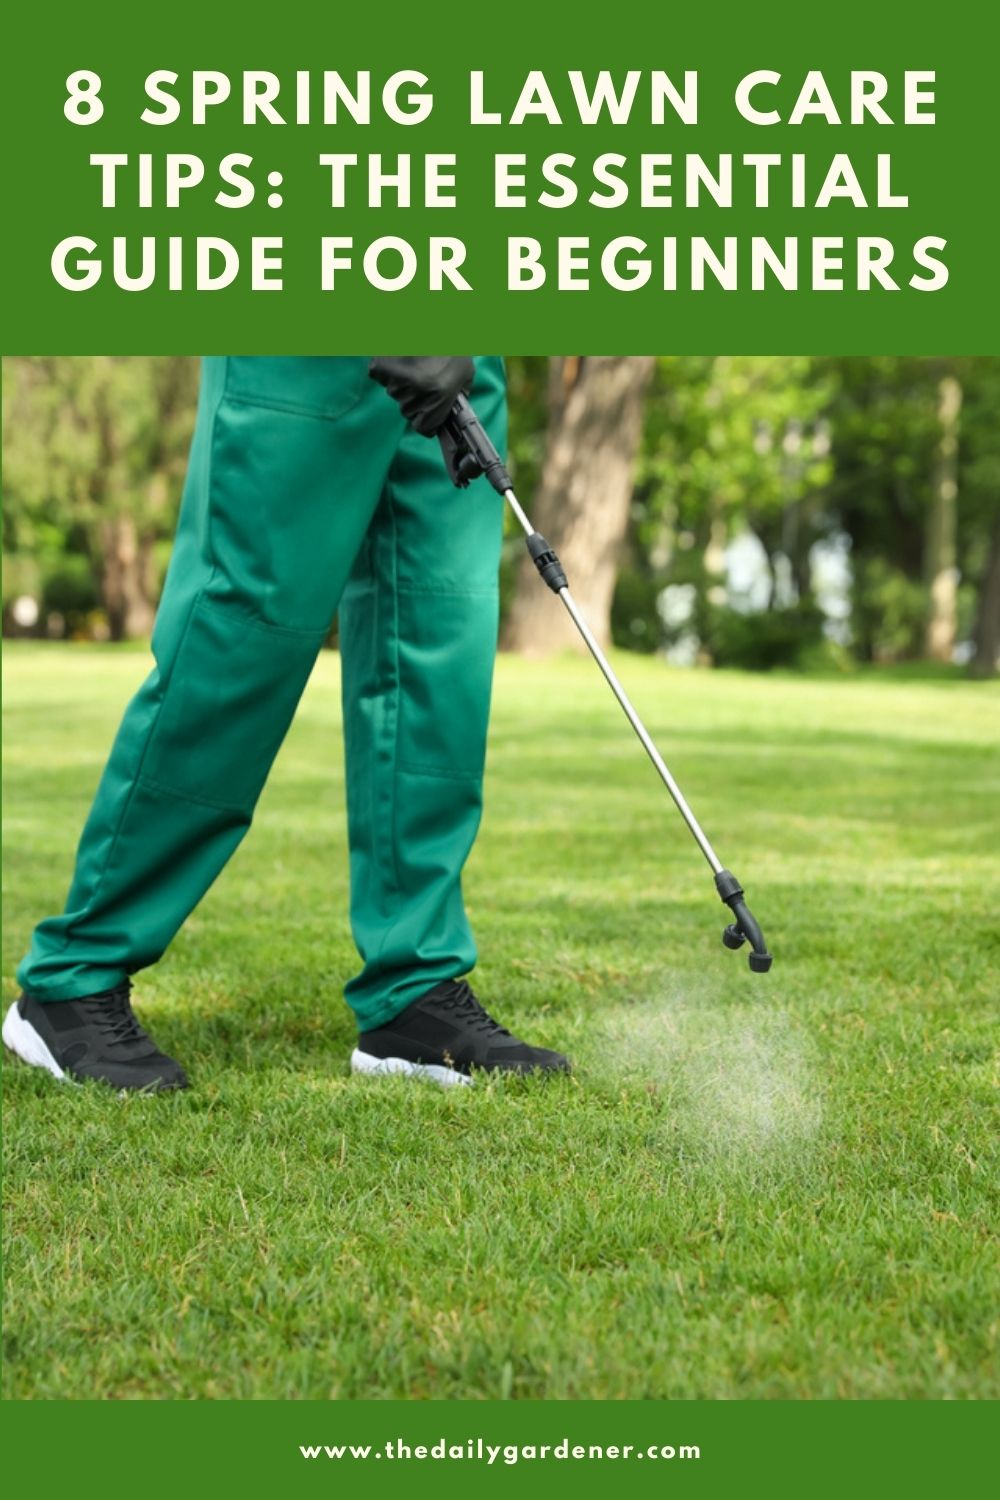 8 Spring Lawn Care Tips The Essential Guide for Beginners 1